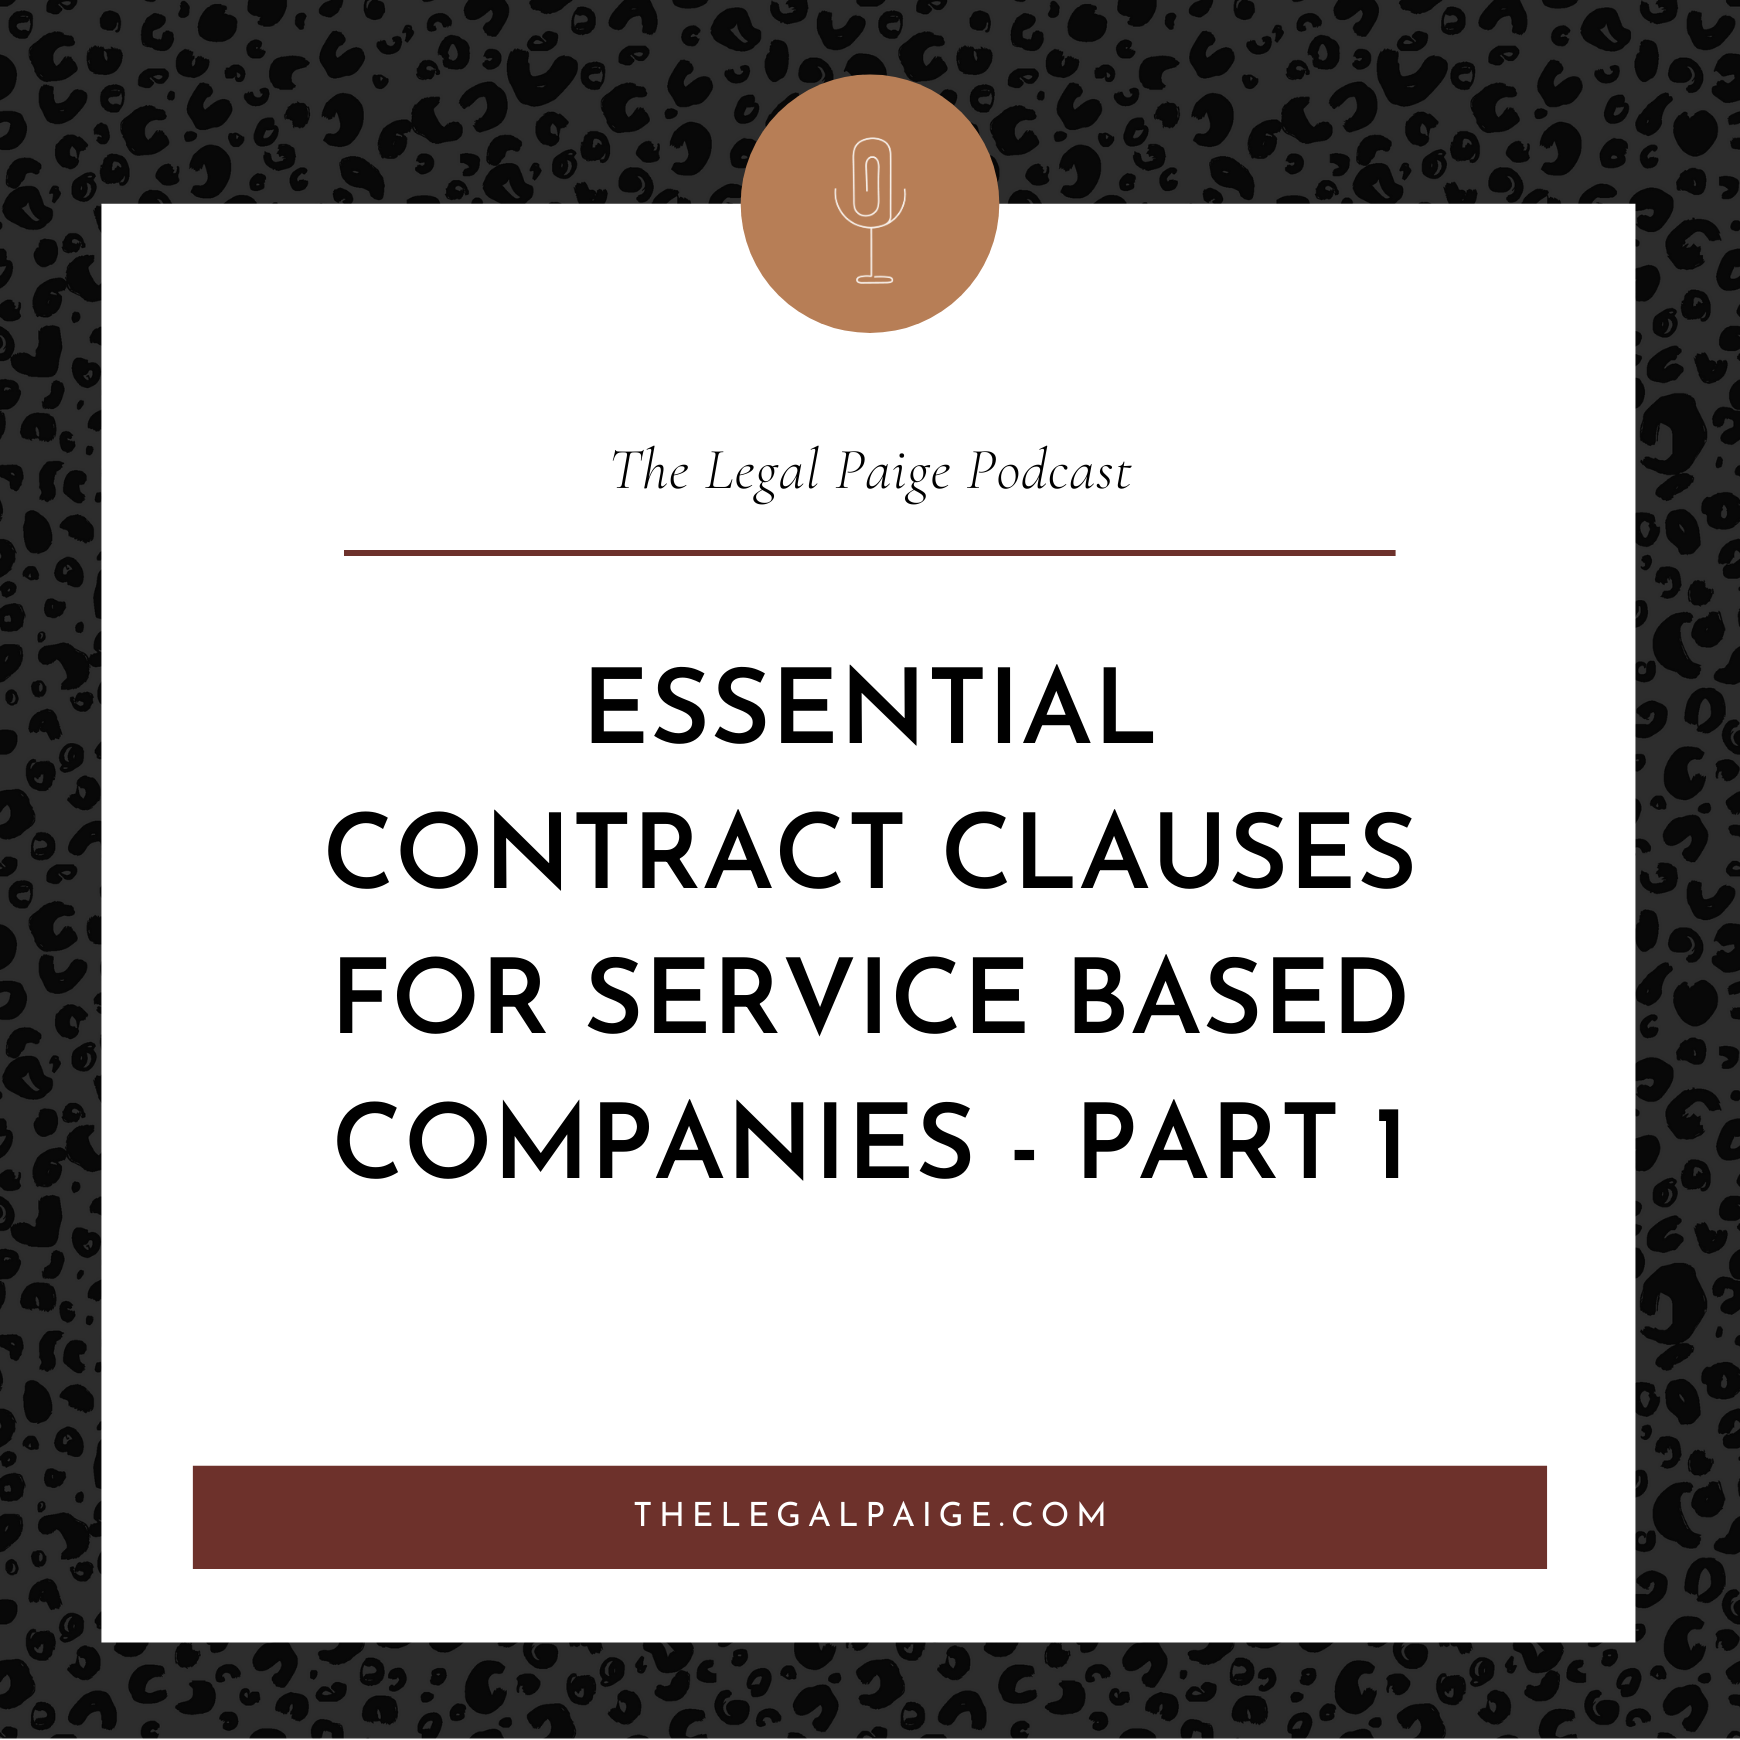 Essential Contract Clauses for Service Based Companies - Part 1